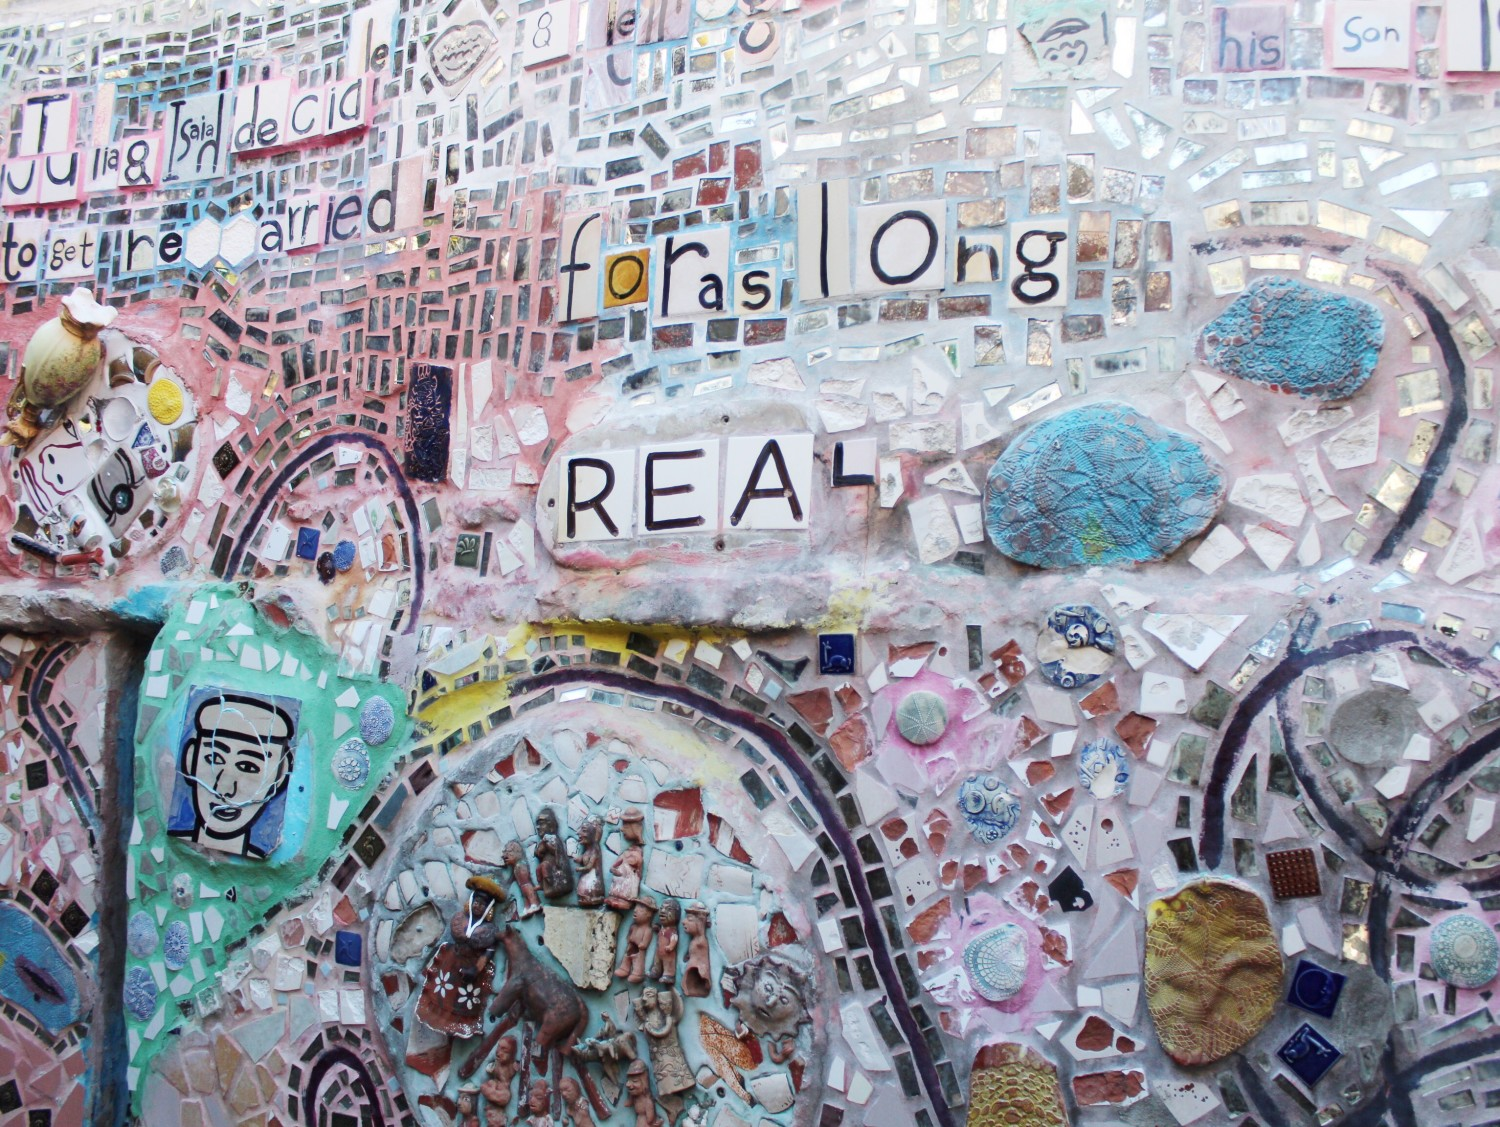 Philadelphia's Magic Gardens art